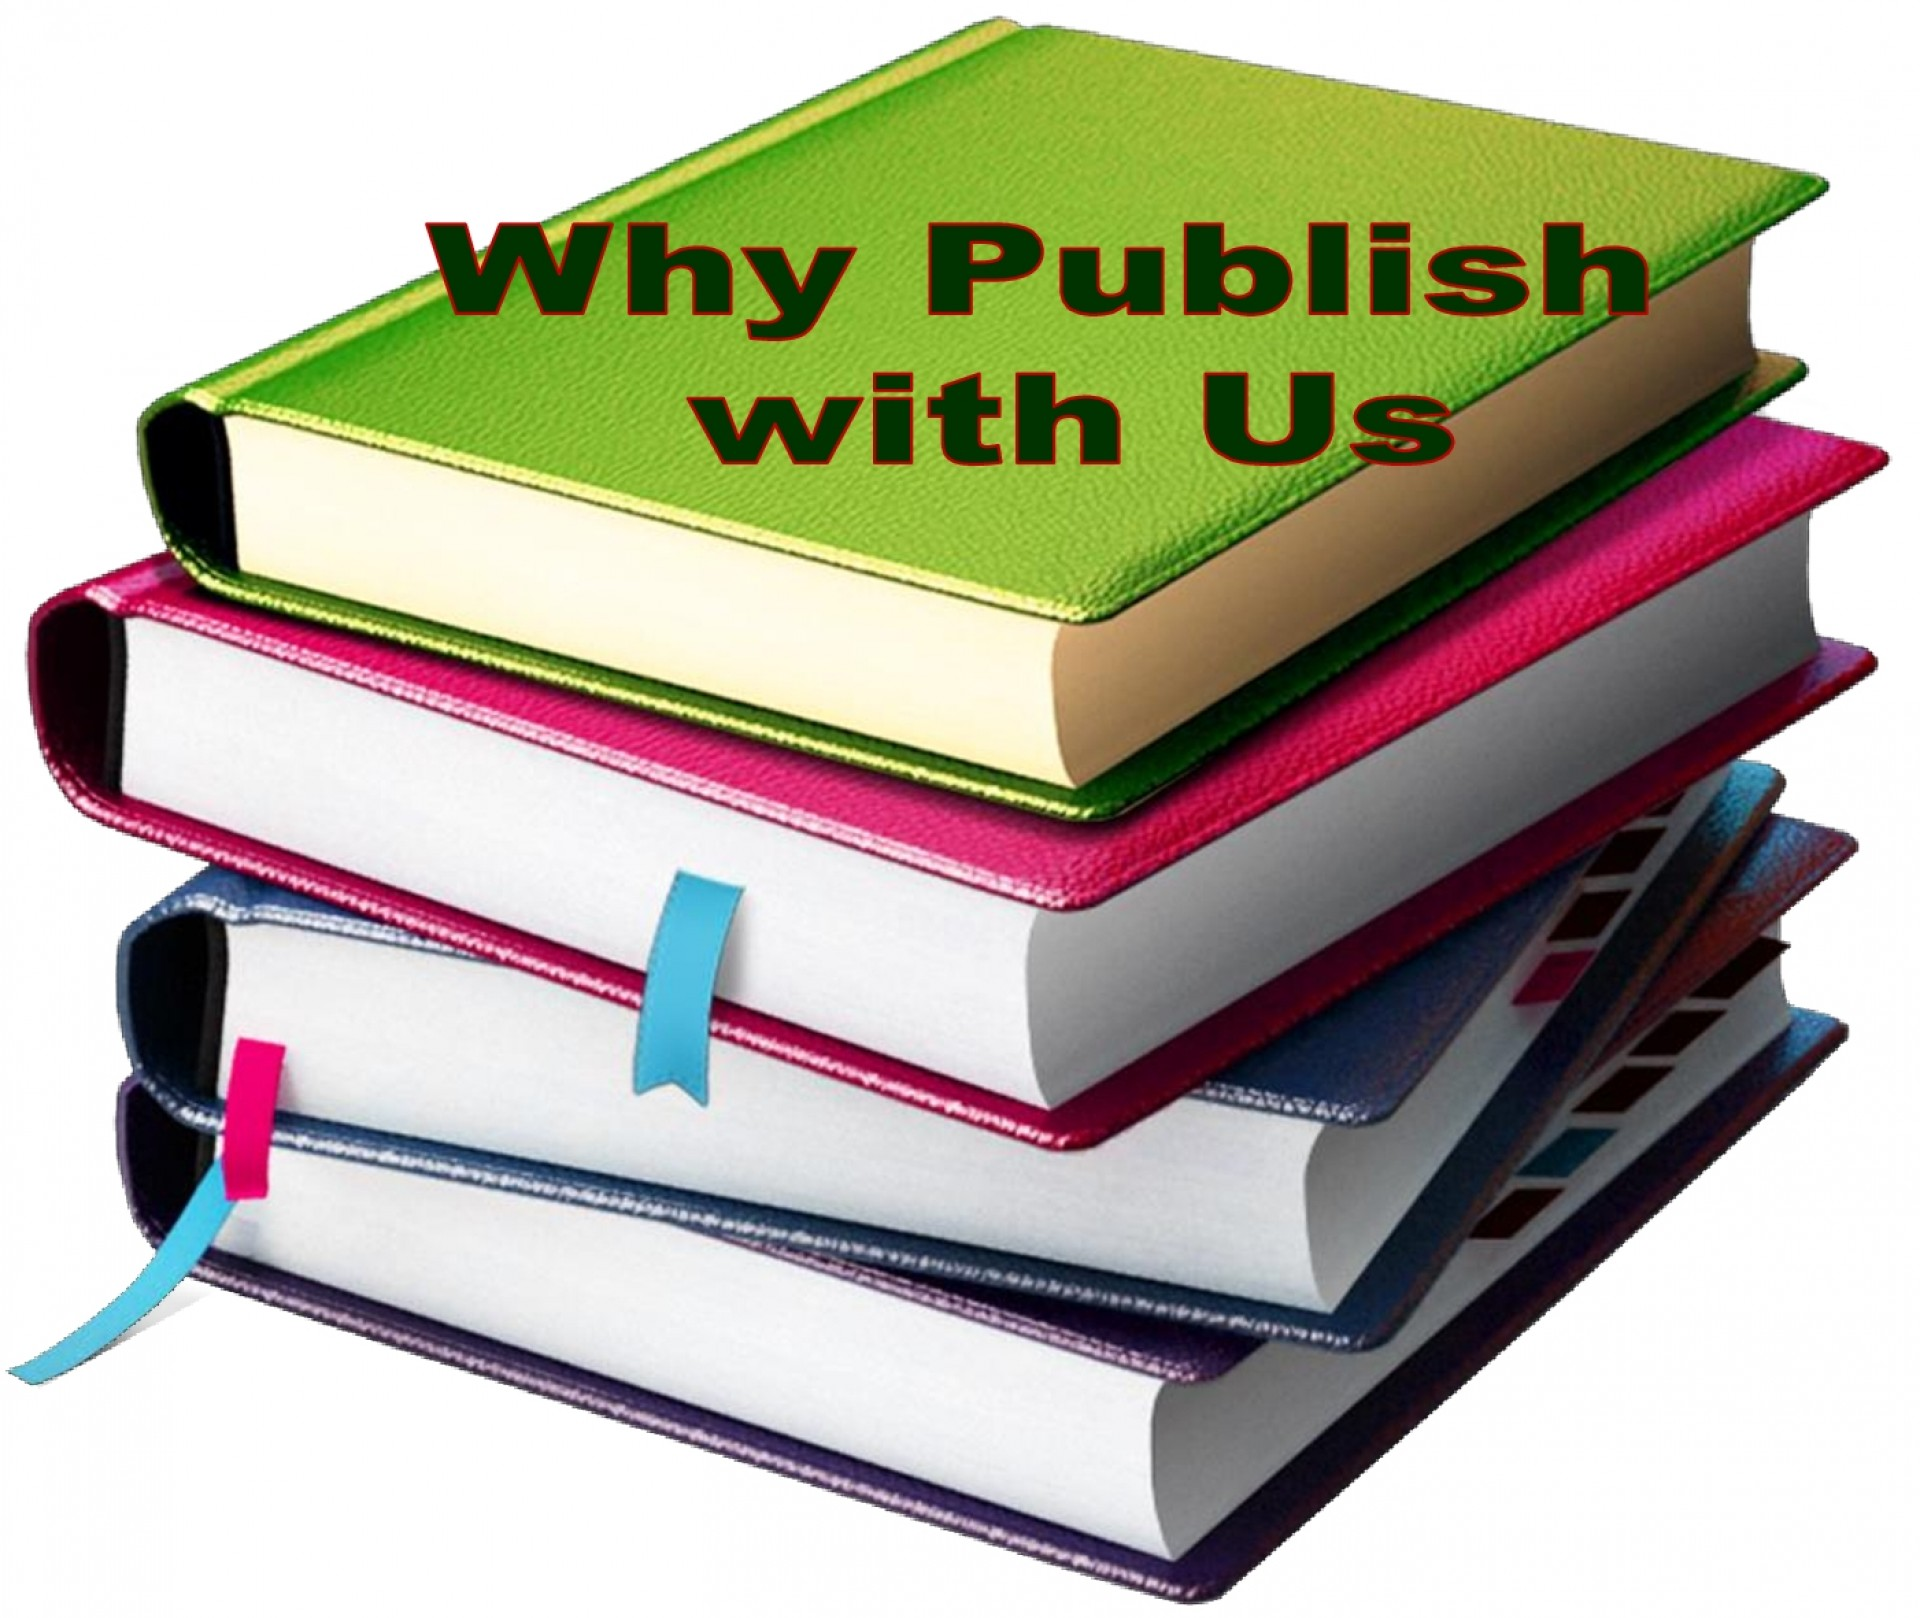 020 Garden6 How To Publish Research Paper In International Journal Free Unusual Pdf 1920